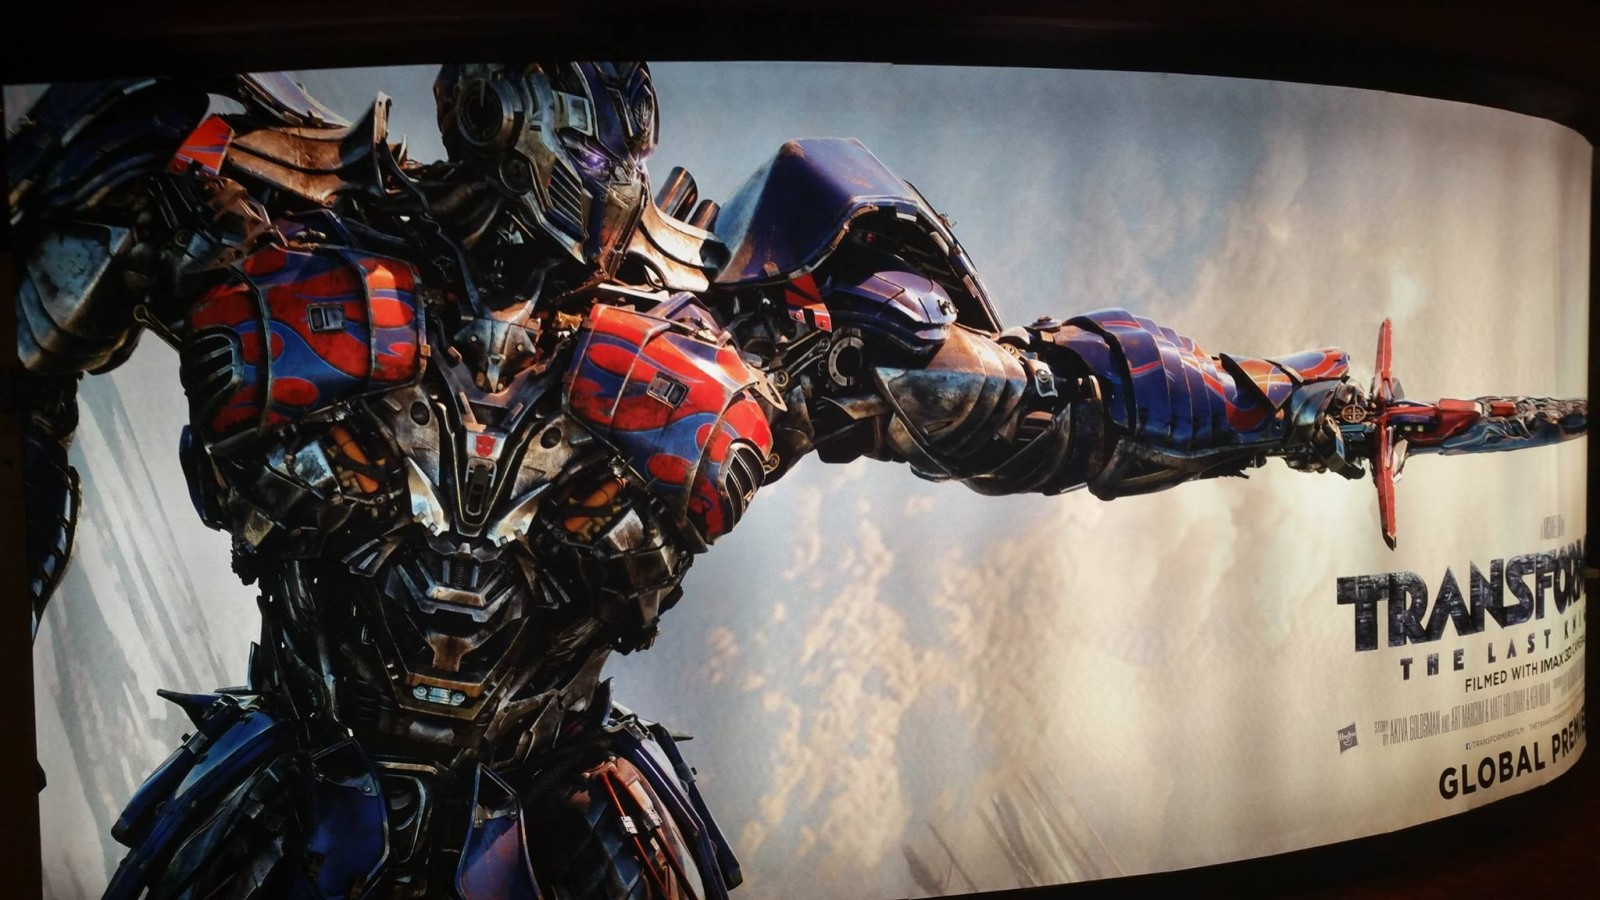 Transformers News: Full Review of Transformers: The Last Knight, with Spoilers